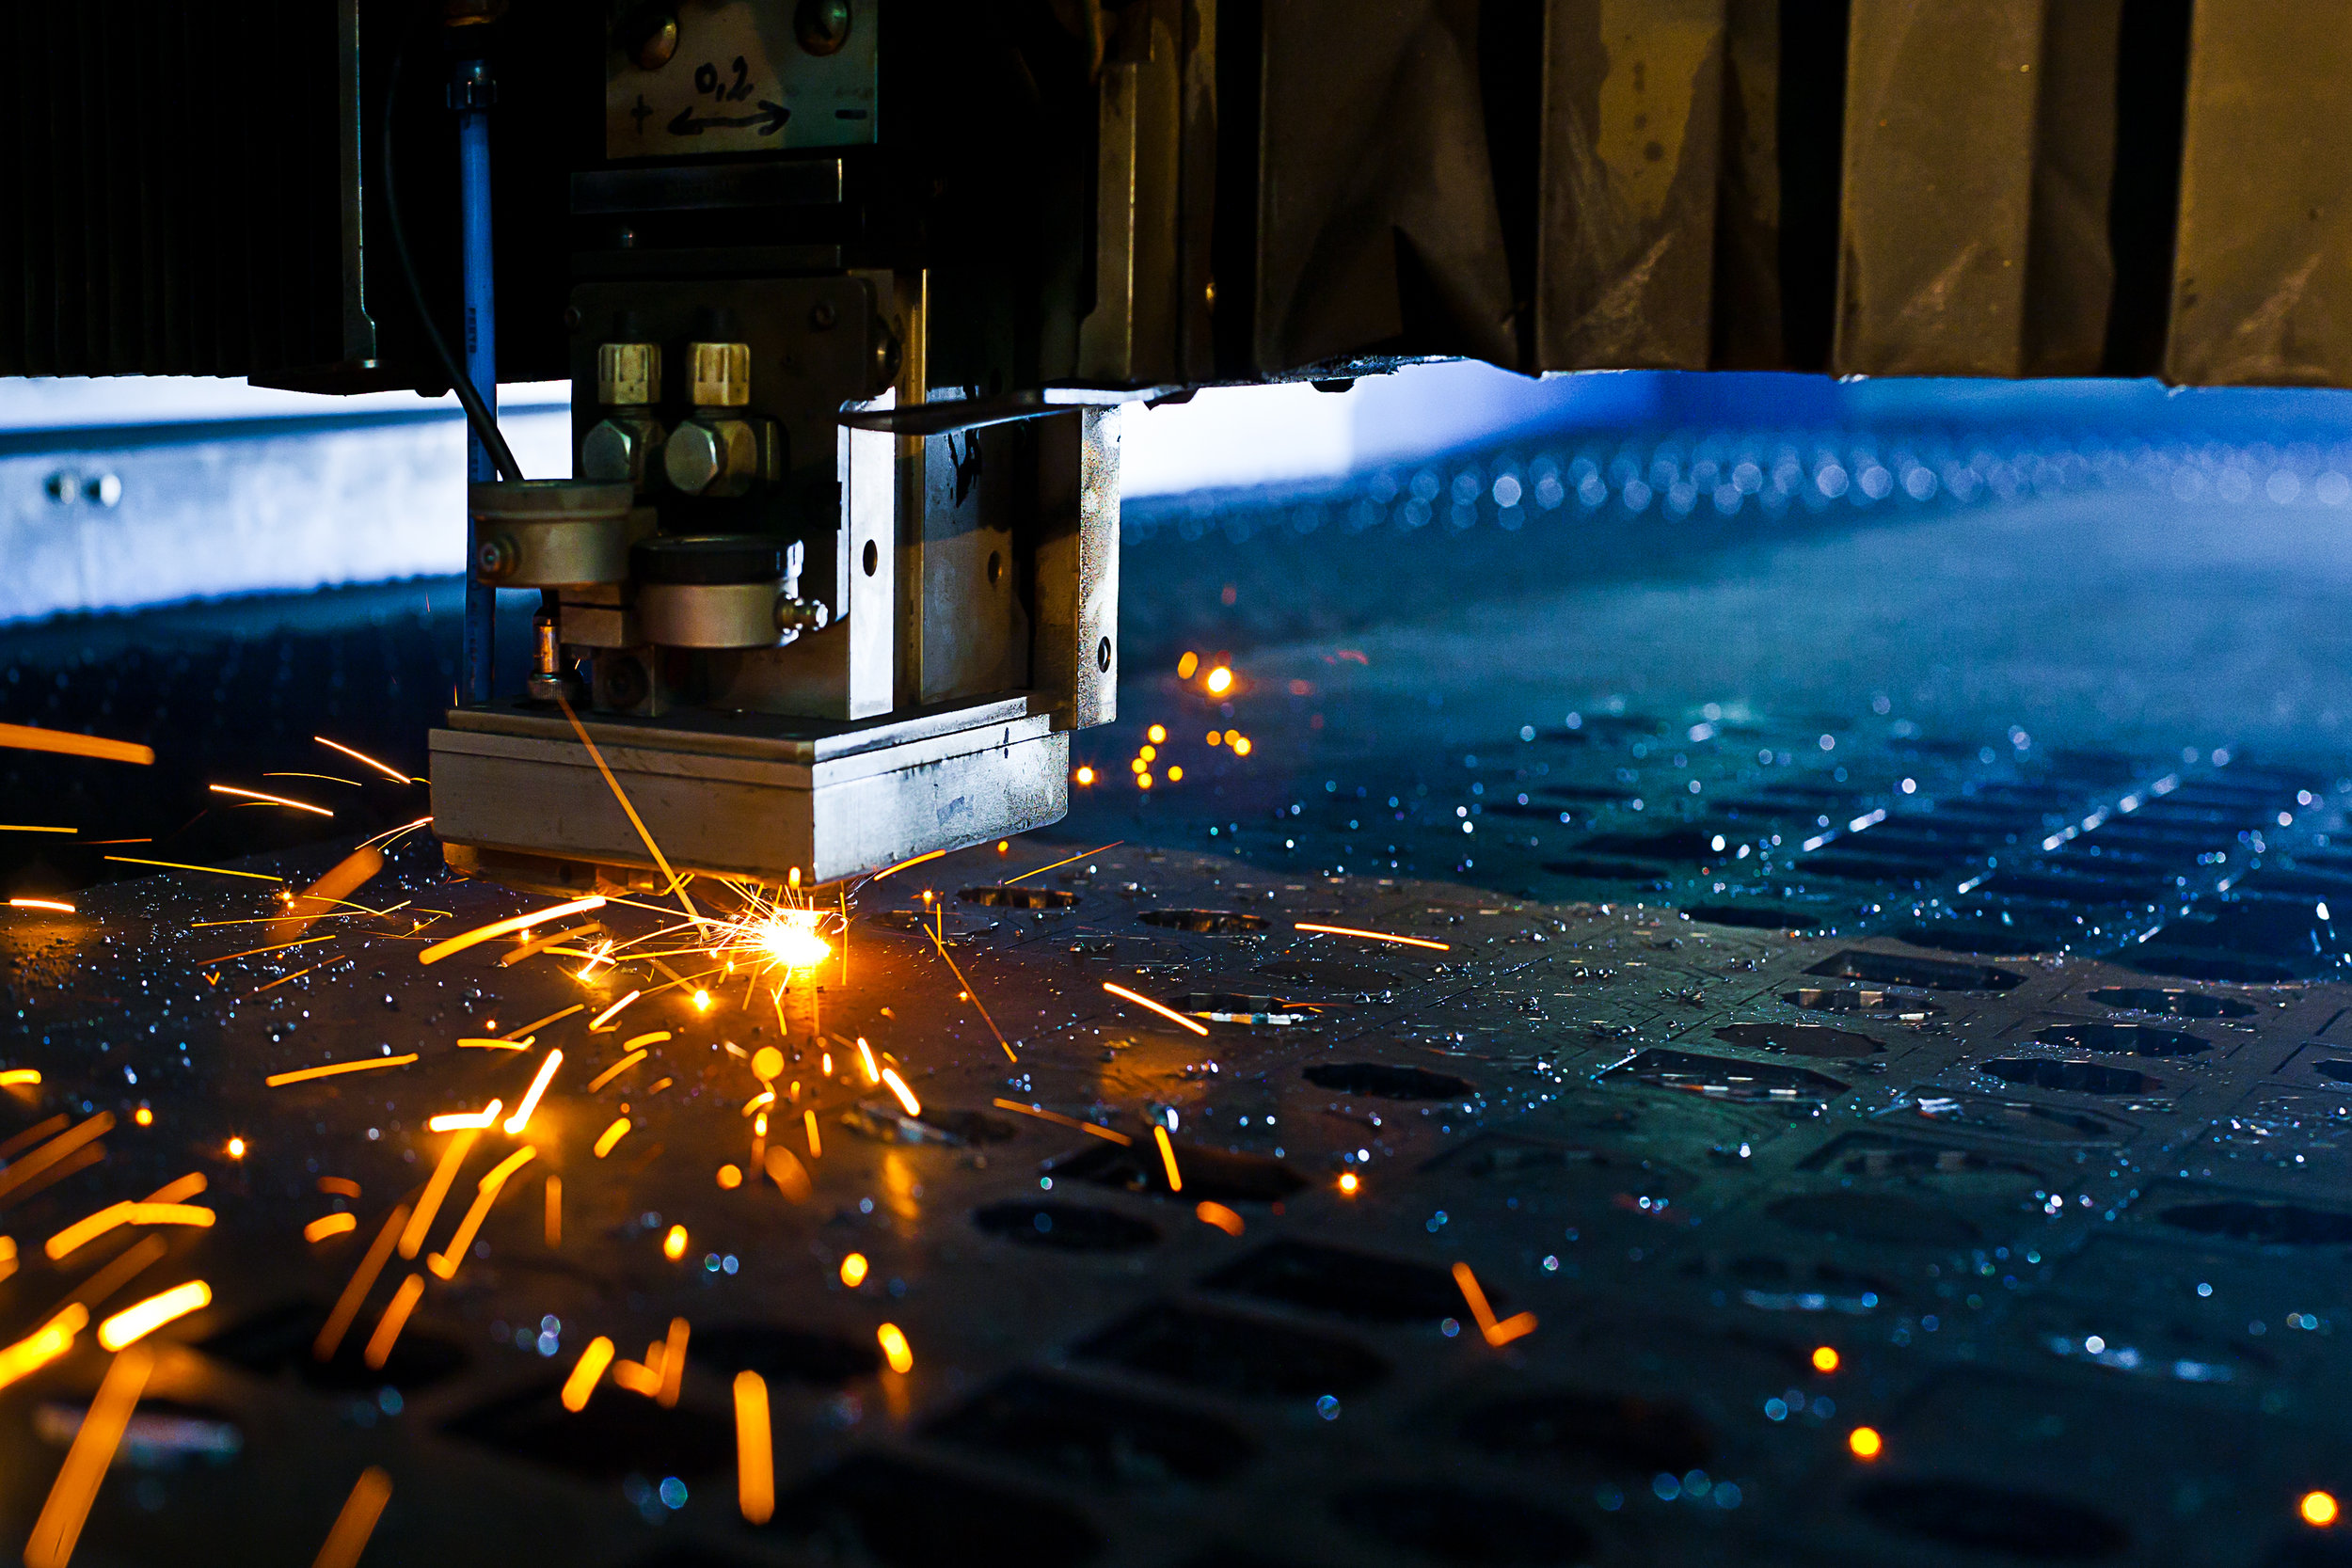 close up manufacture sparks iStock-452252765.jpg